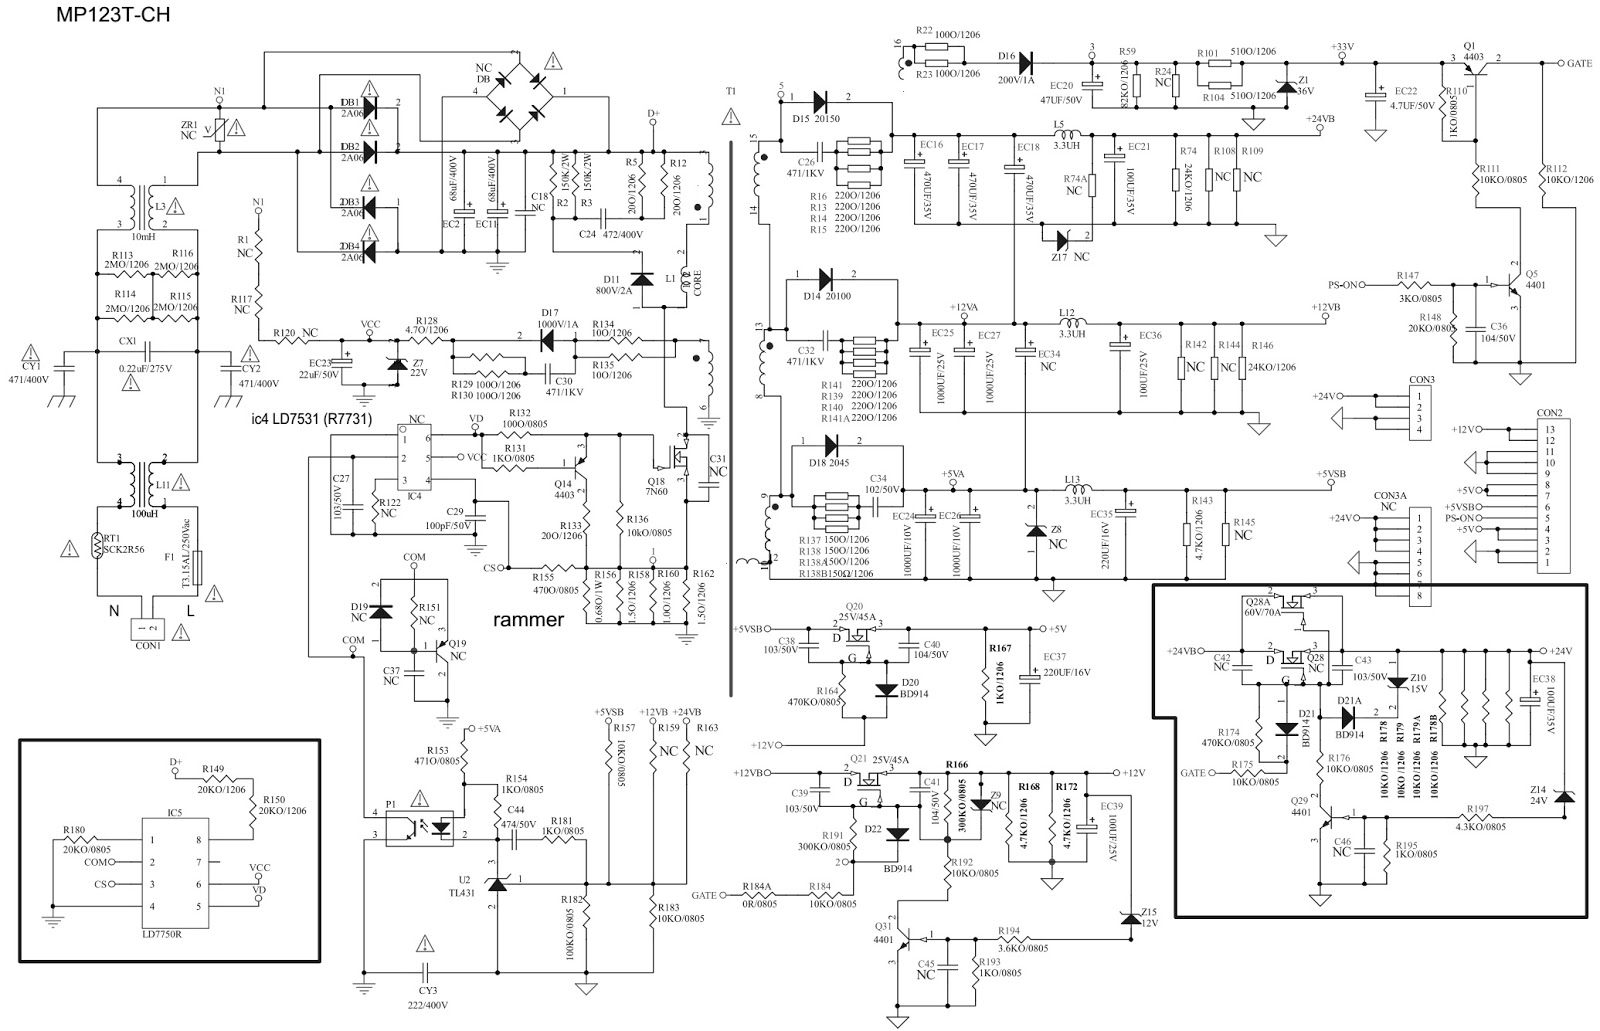 Schematic Diagrams  Mp123t